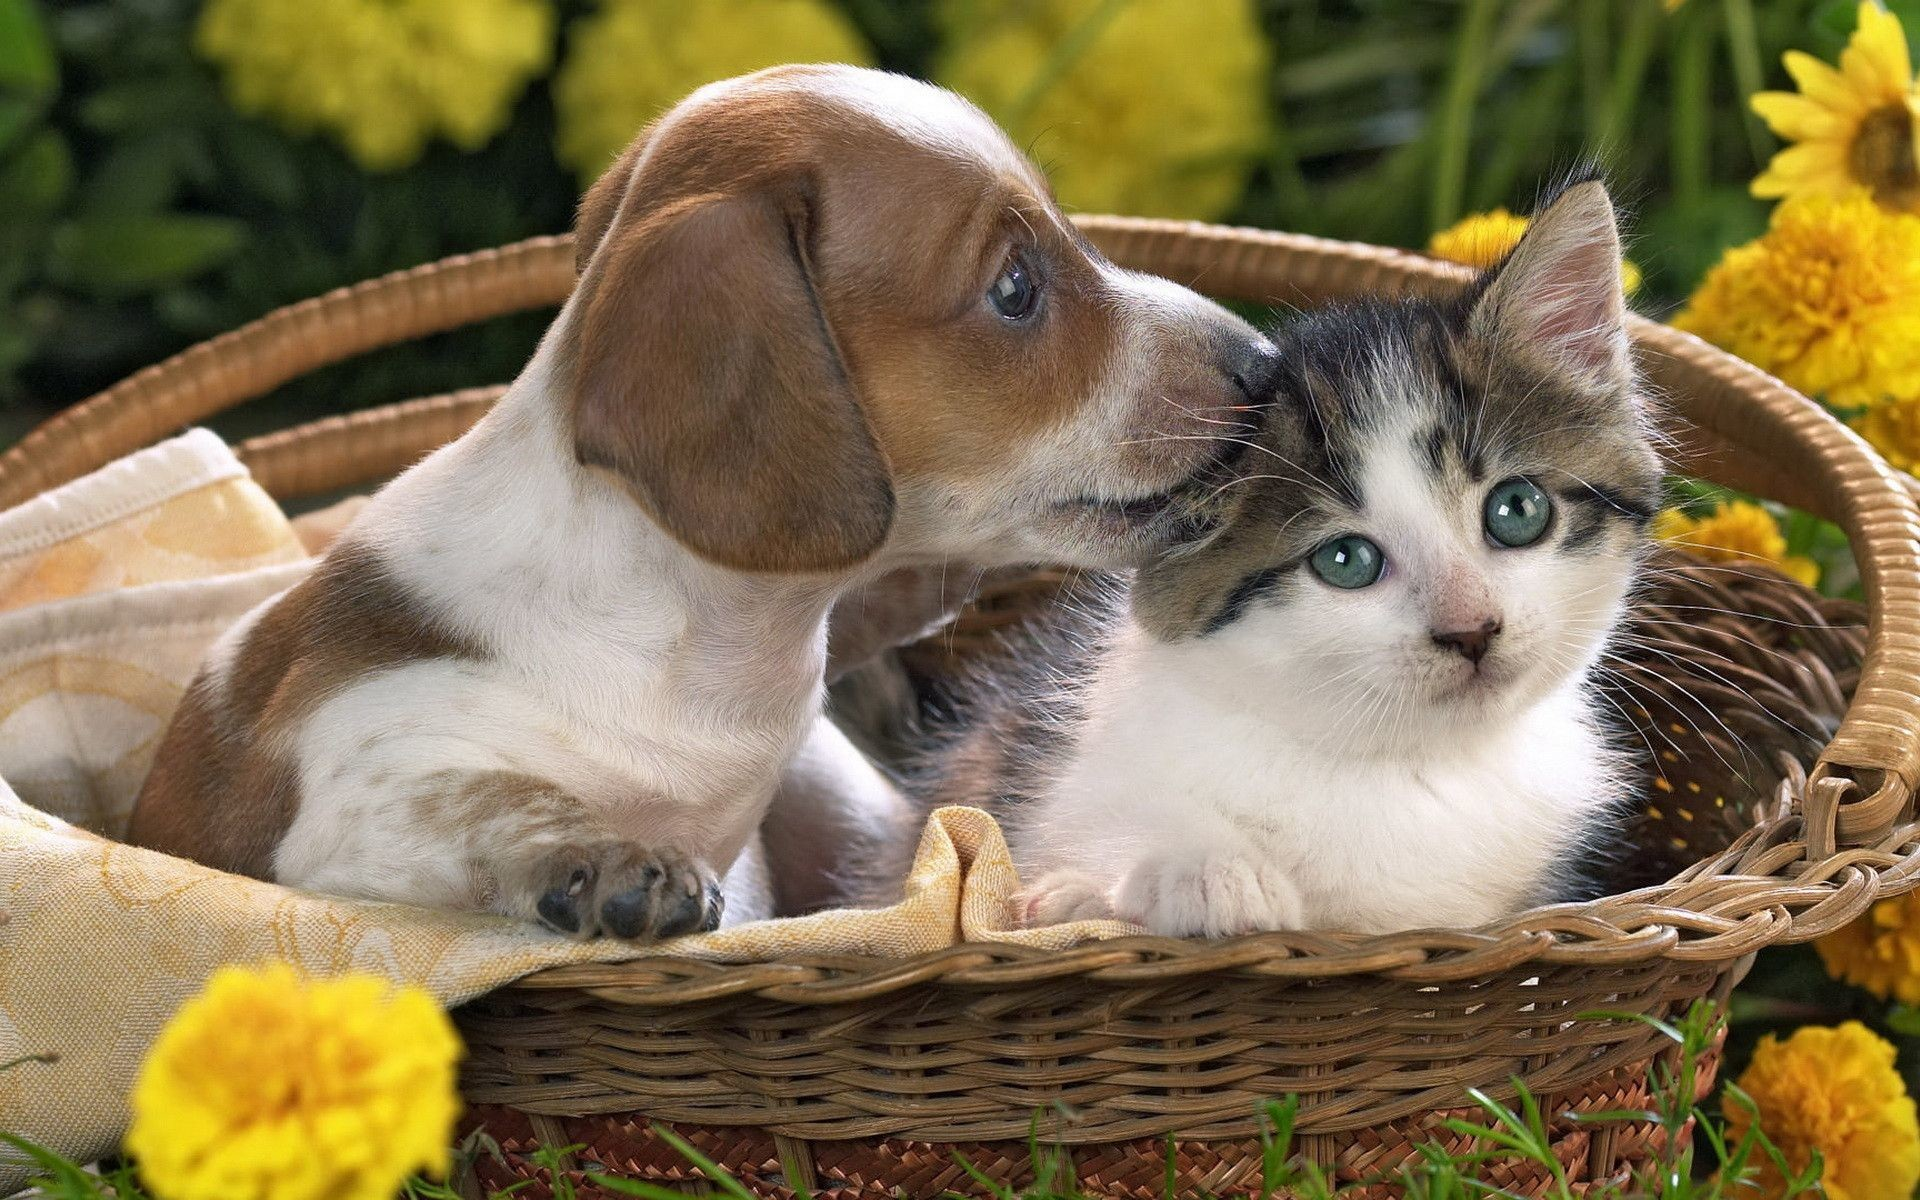 Explore Kittens And Puppies, Cats And Kittens, and more!